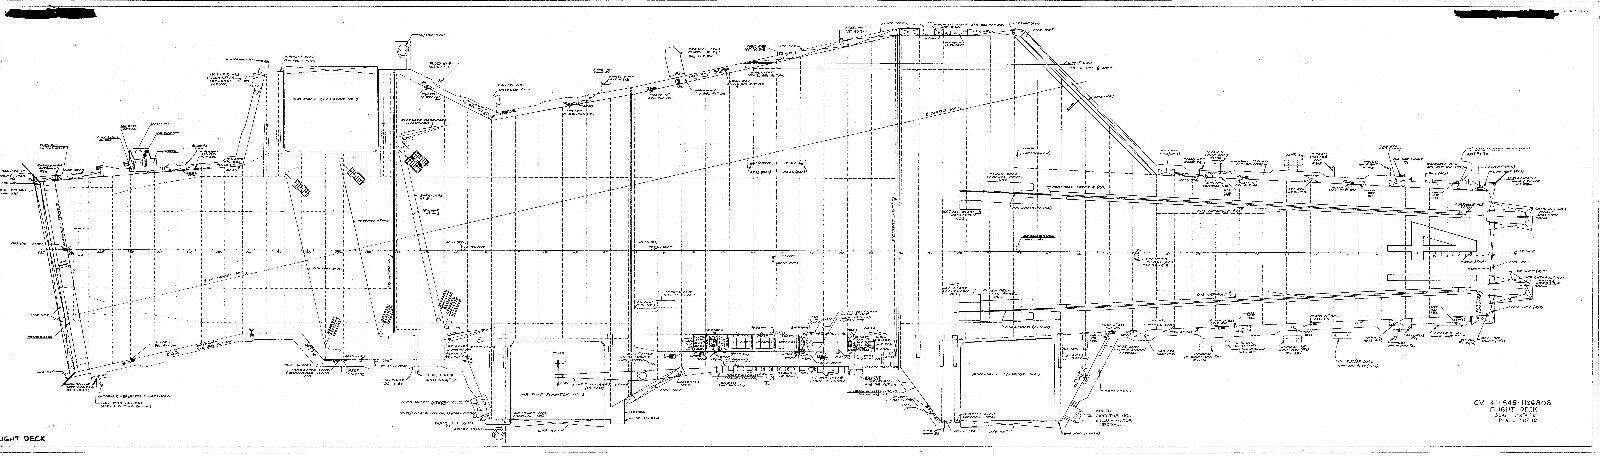 Uss midway blueprint plans aircraft carrier drawings period detail 1 of 7 see more malvernweather Images